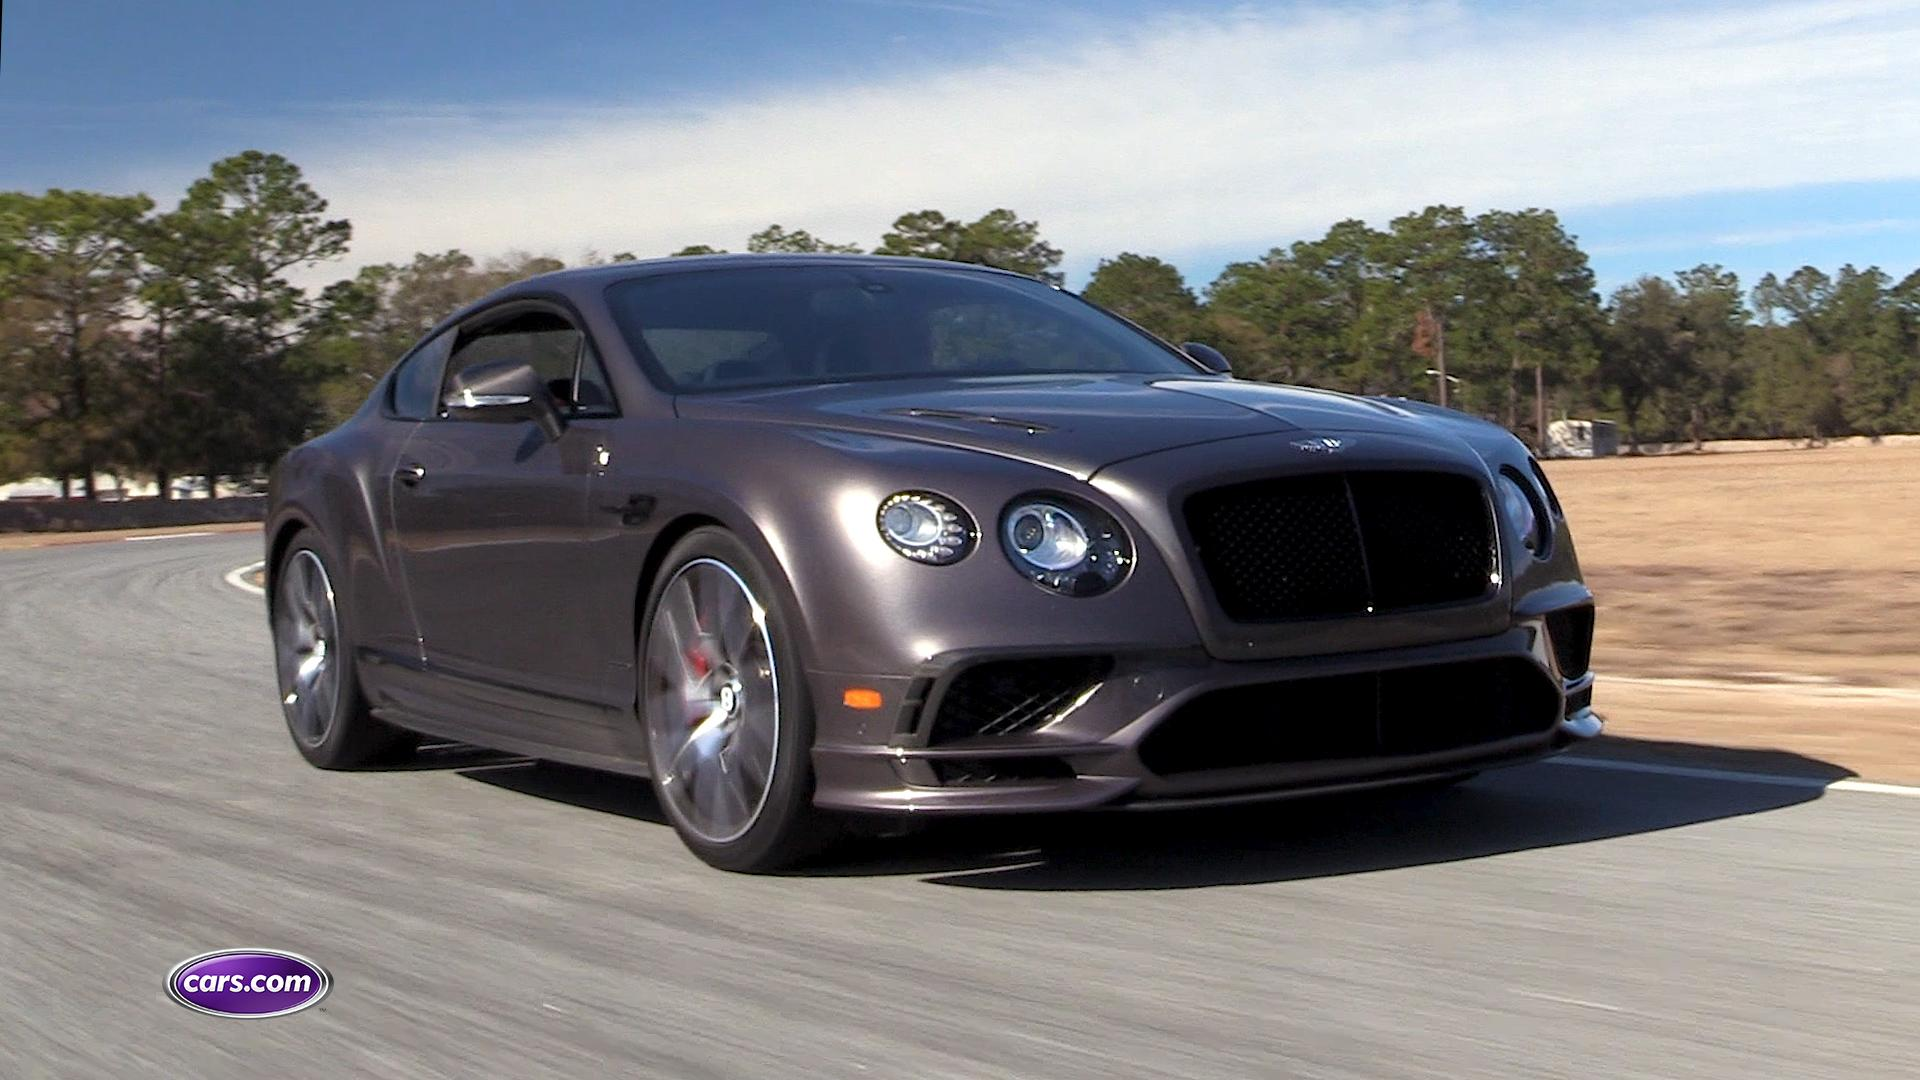 Video: 2017 Bentley Continental Supersports — Cars.com